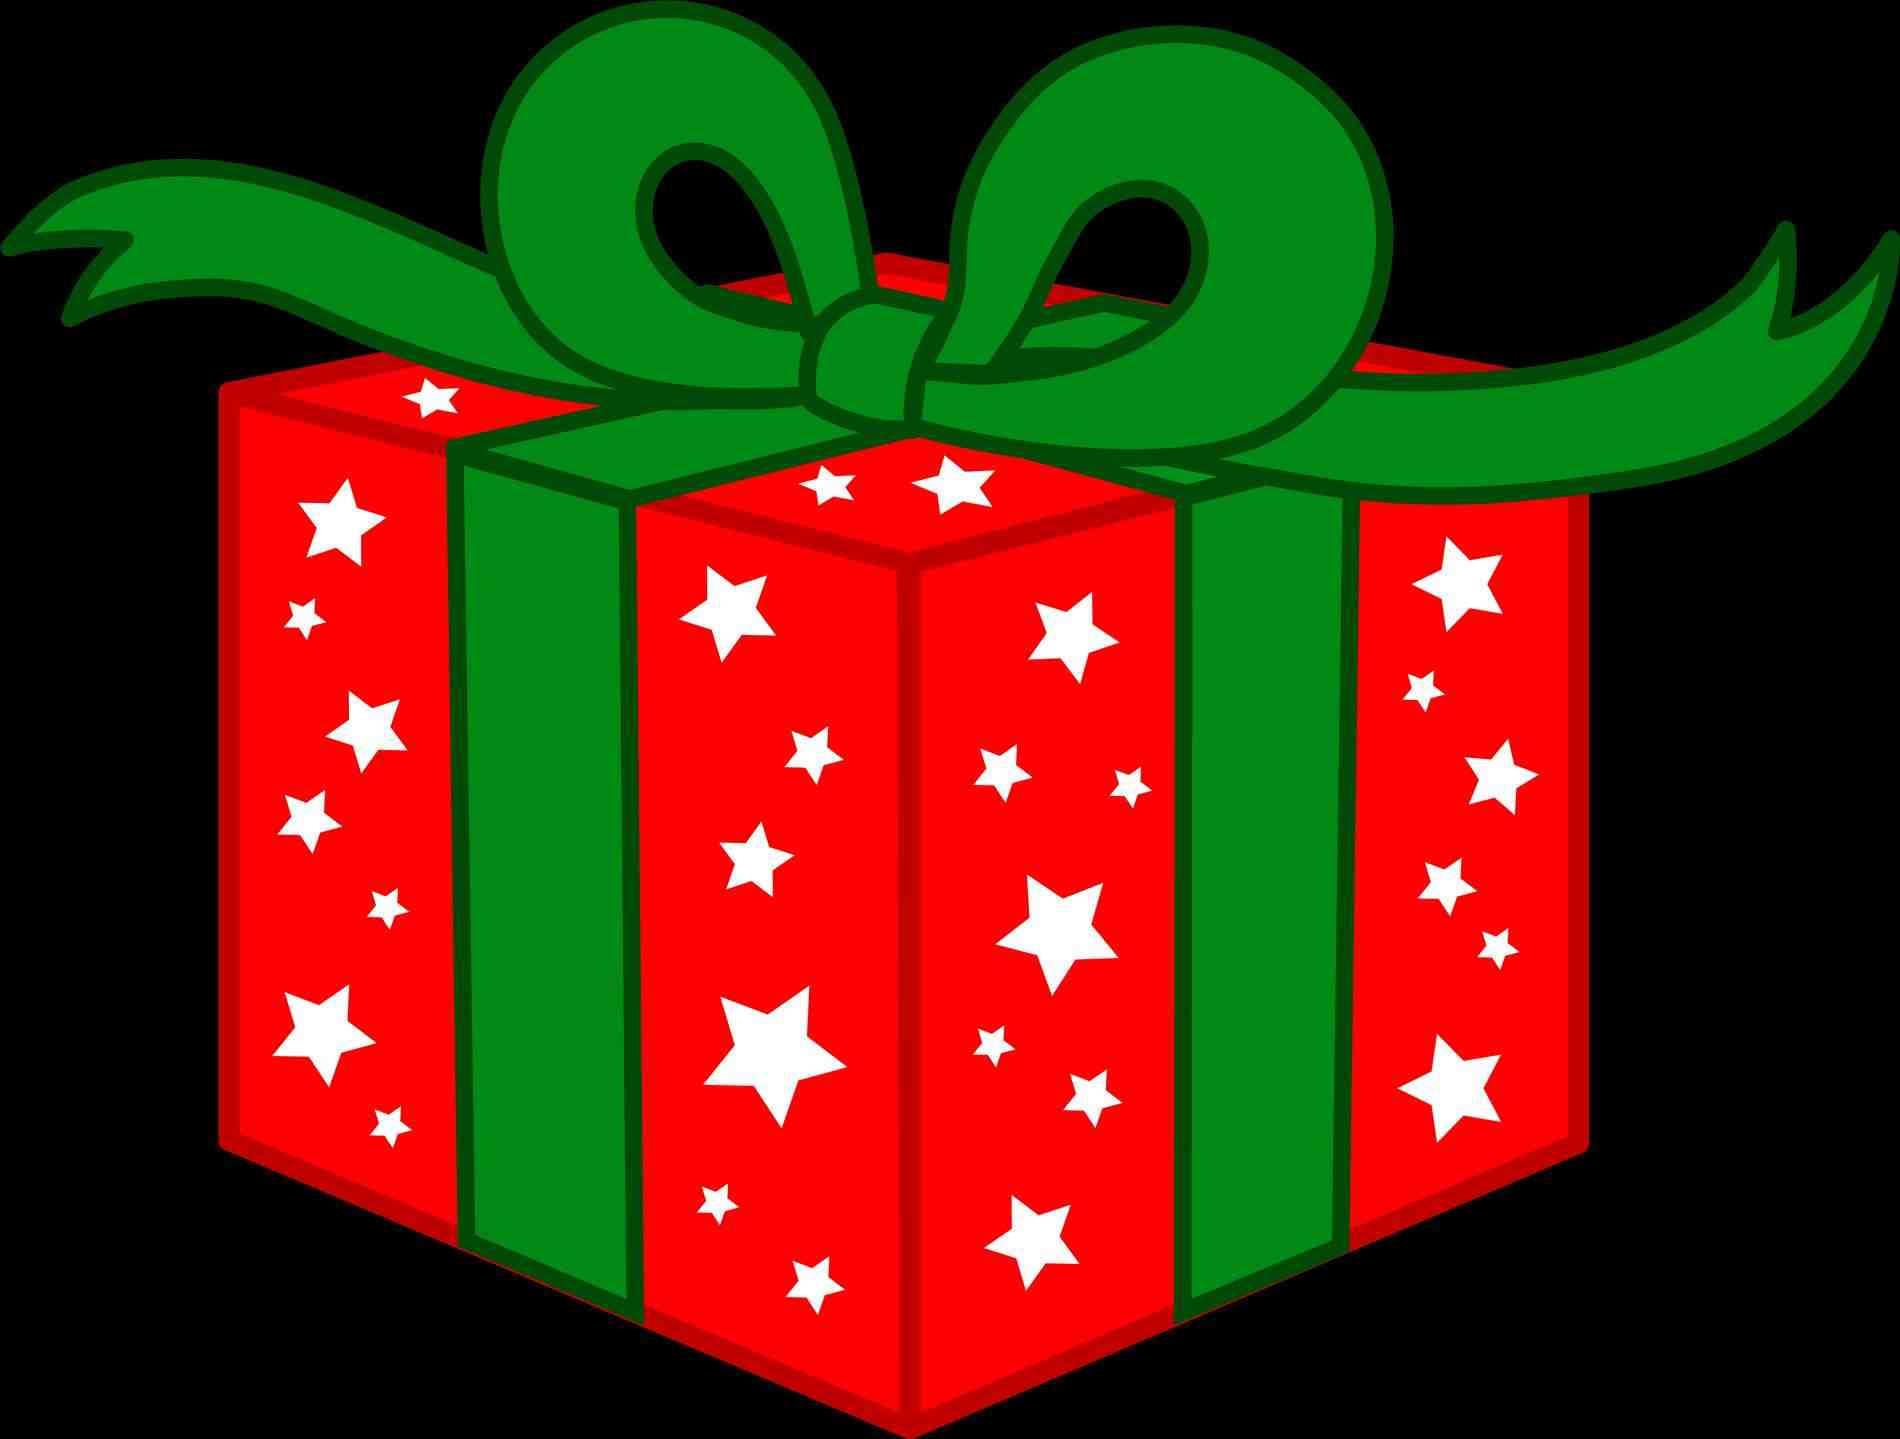 1900x1439 Is Free Christmas Images Clip Art Borders Border Templates